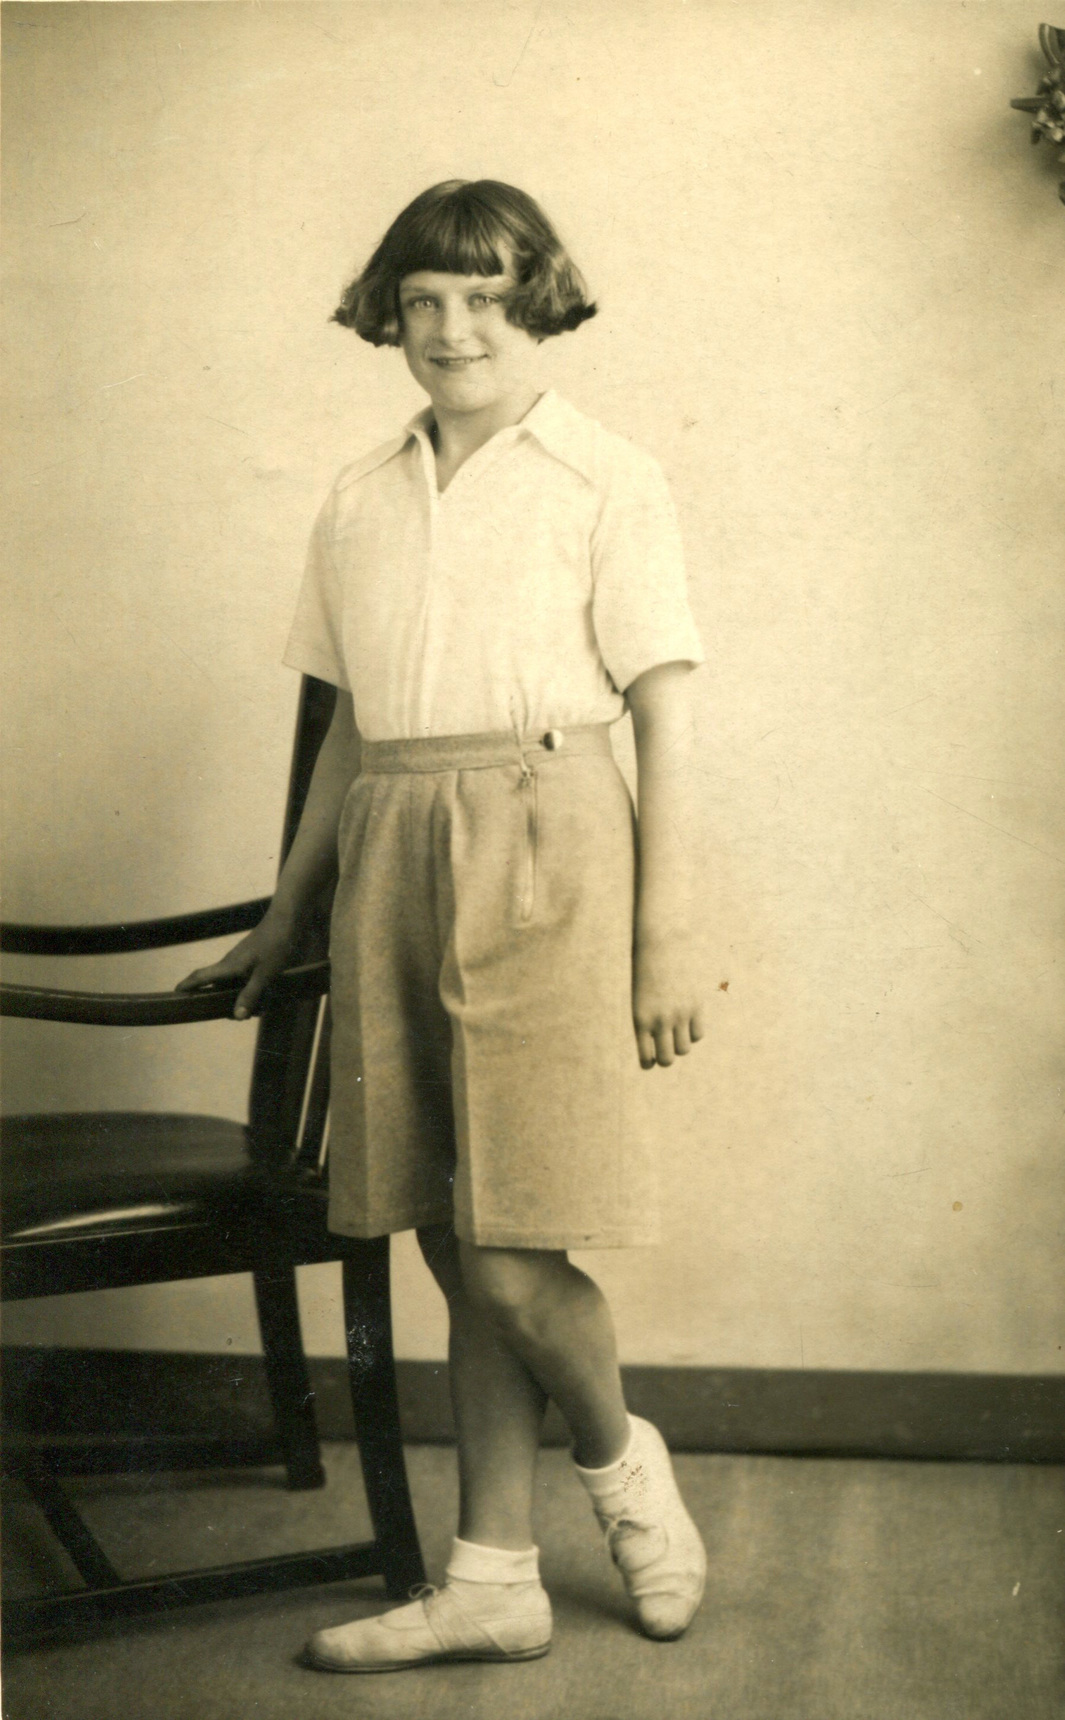 Studio Portrait Girl In Shorts By Chair c.1933